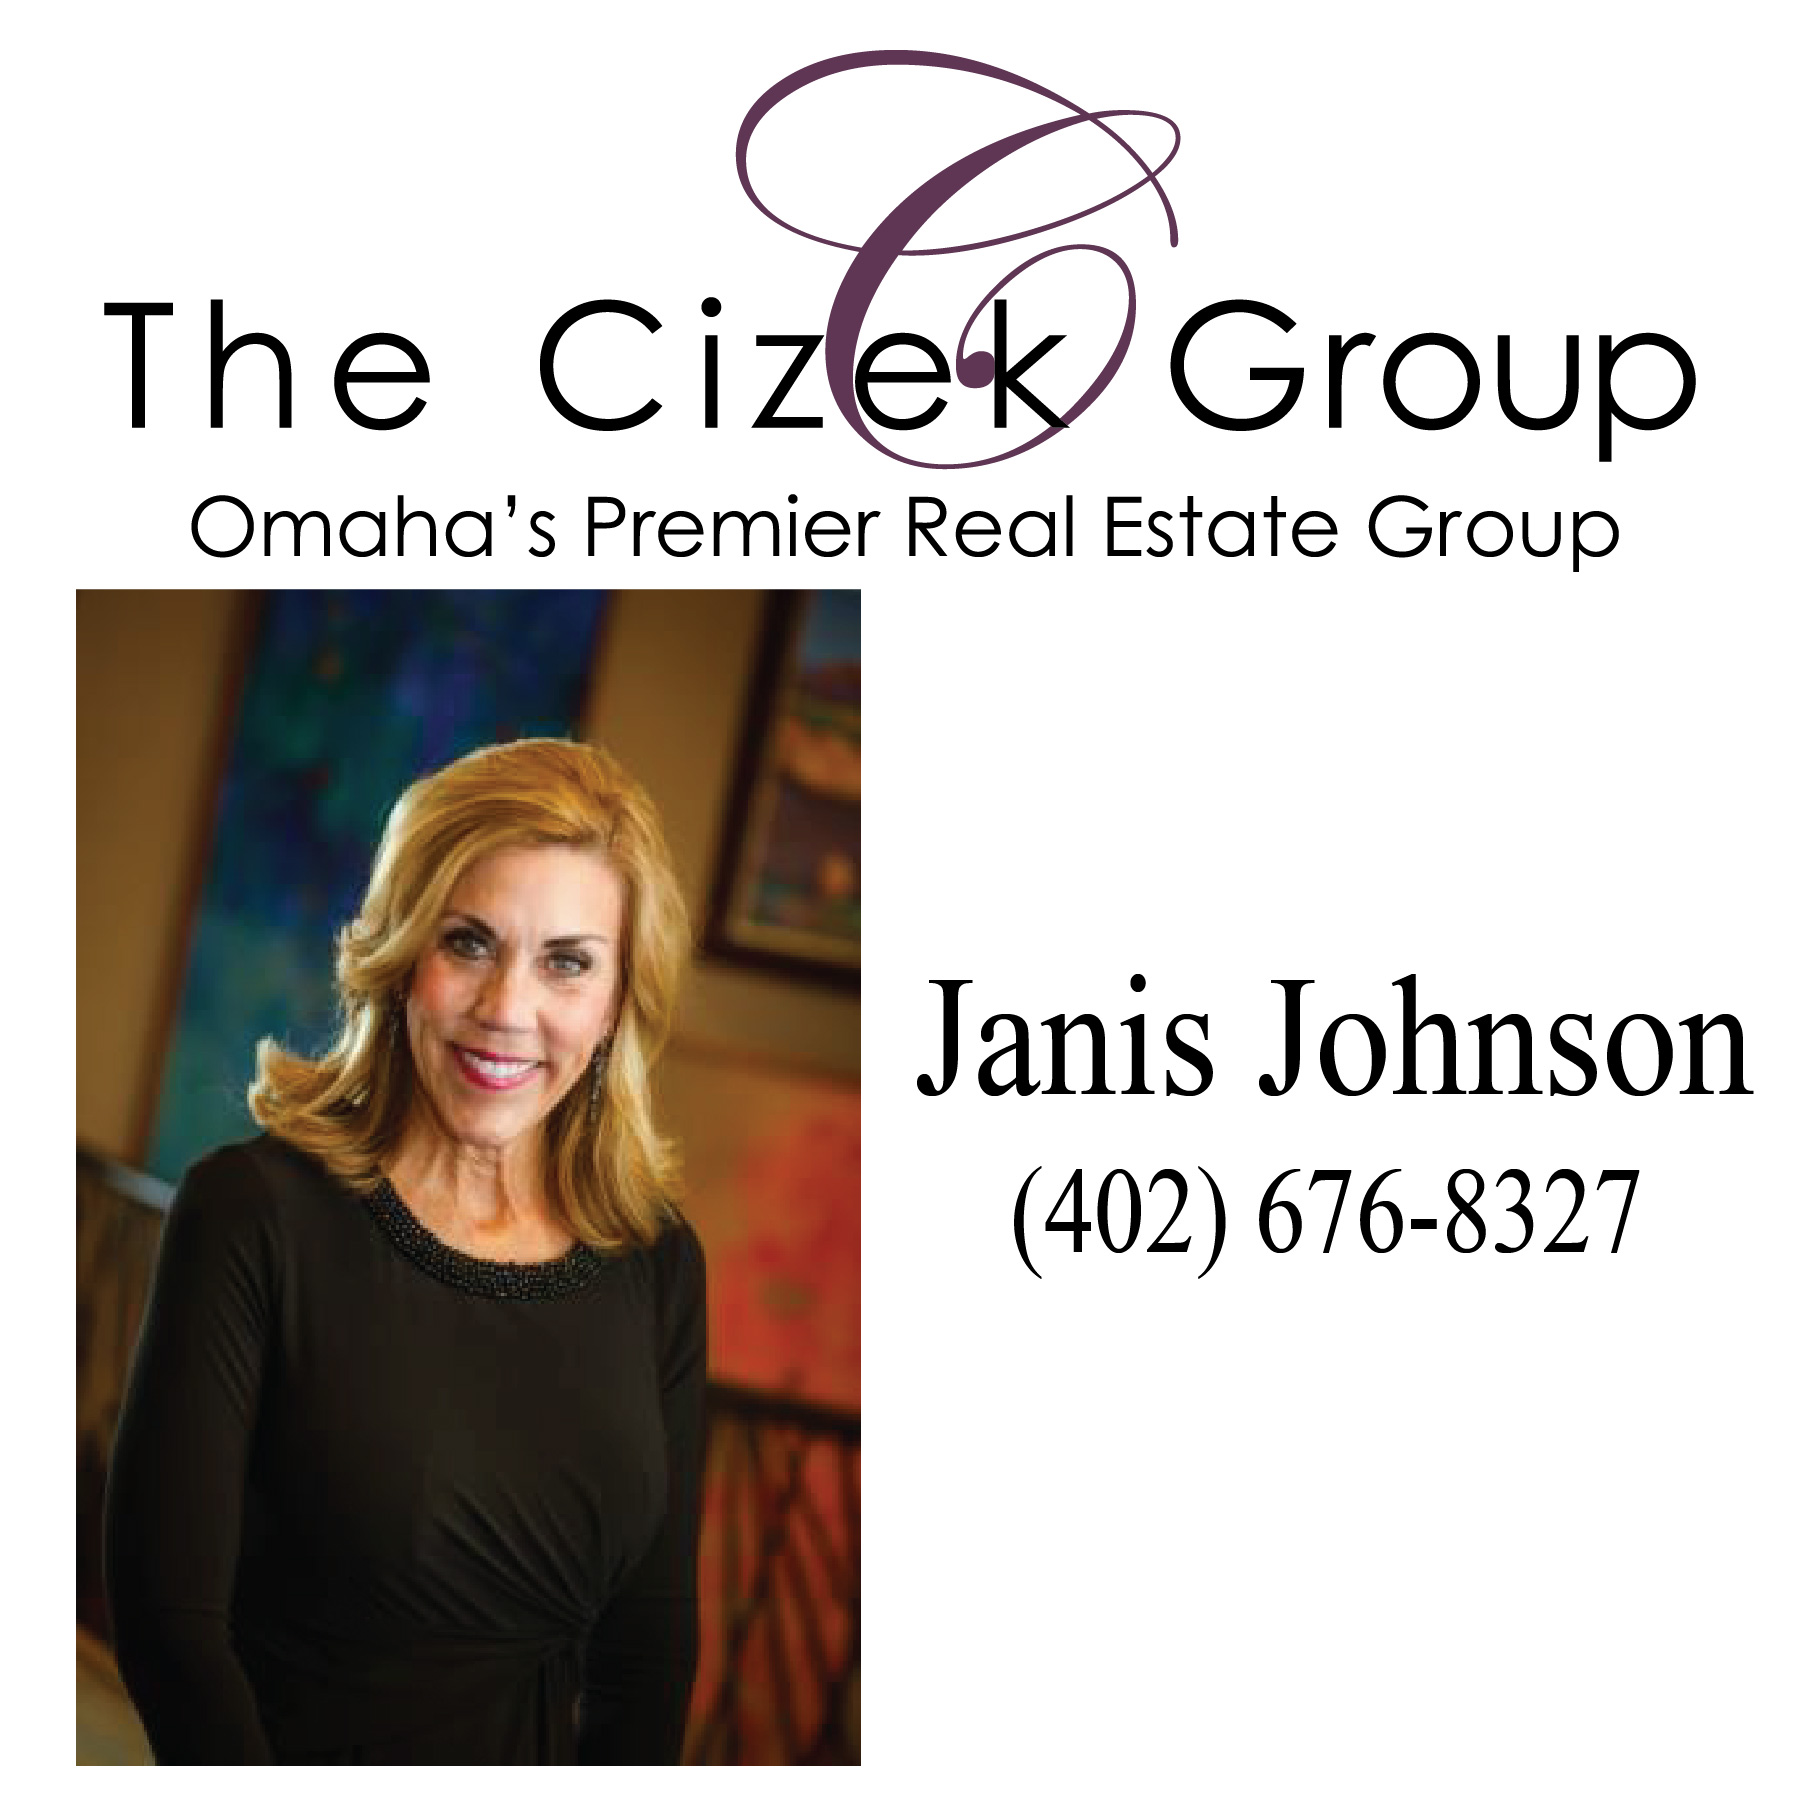 Janis Johnson - Cizek Group